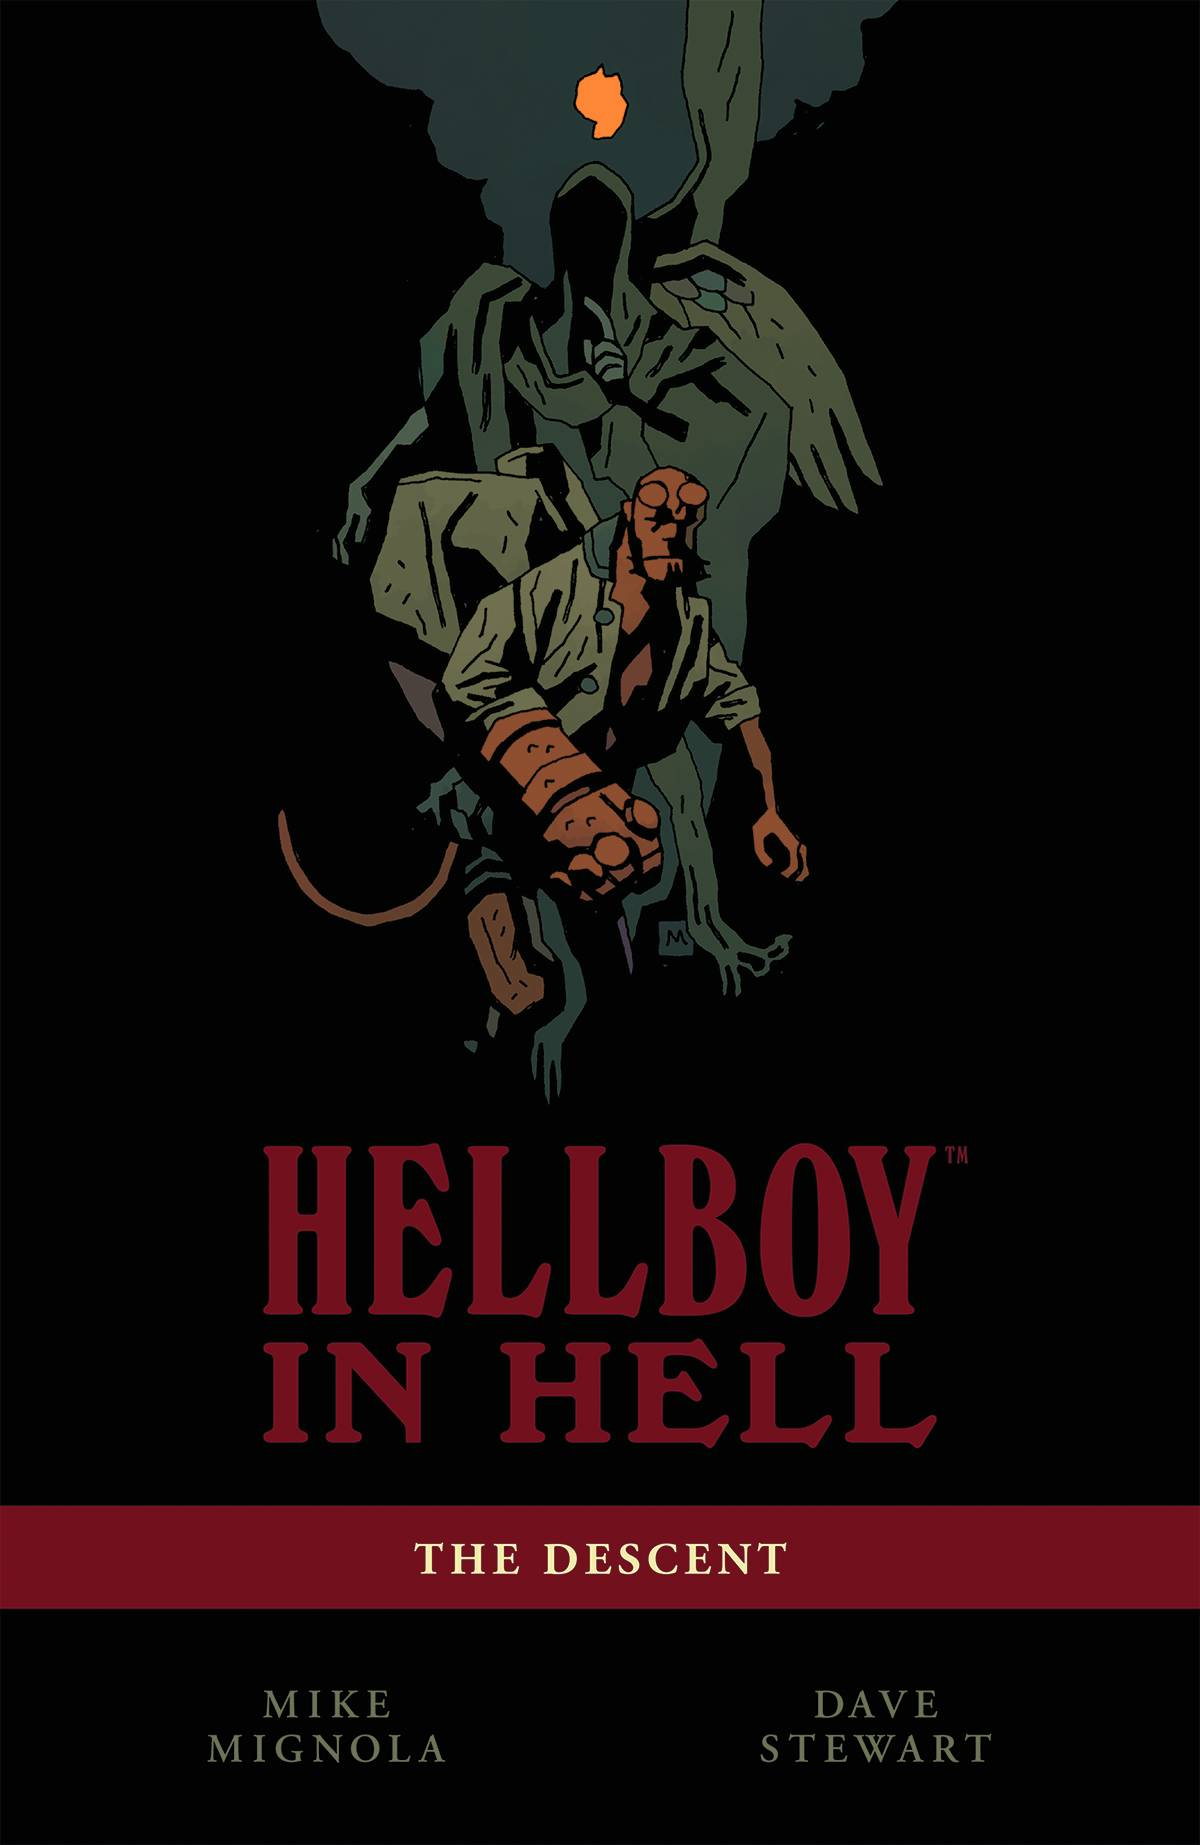 hellboy-in-hell-vol1